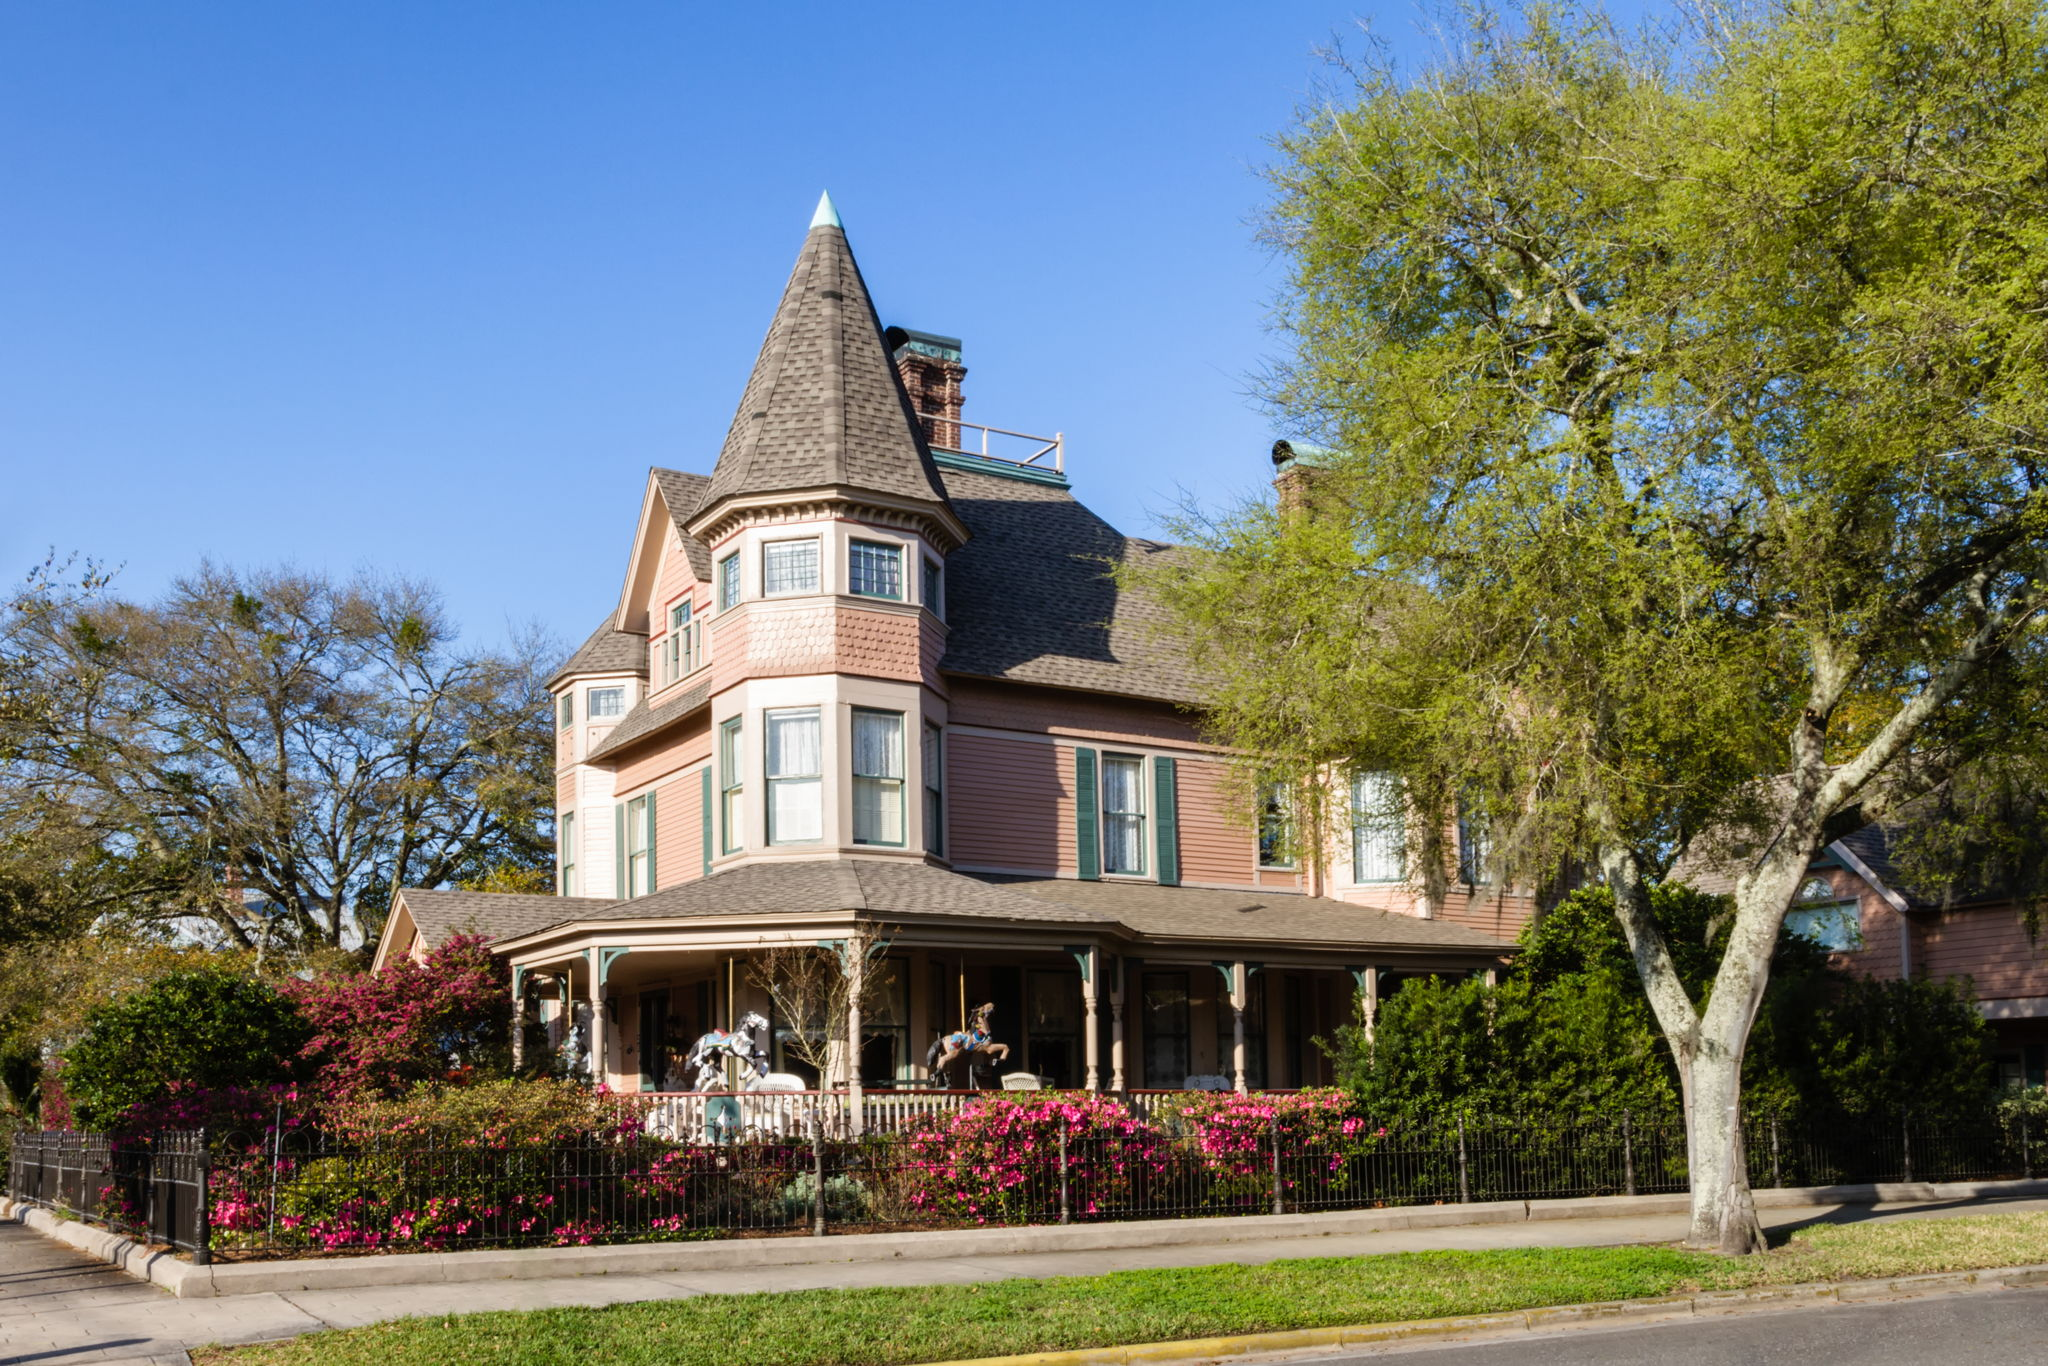 ..and explore the area's 50-plus block of beautiful historic homes